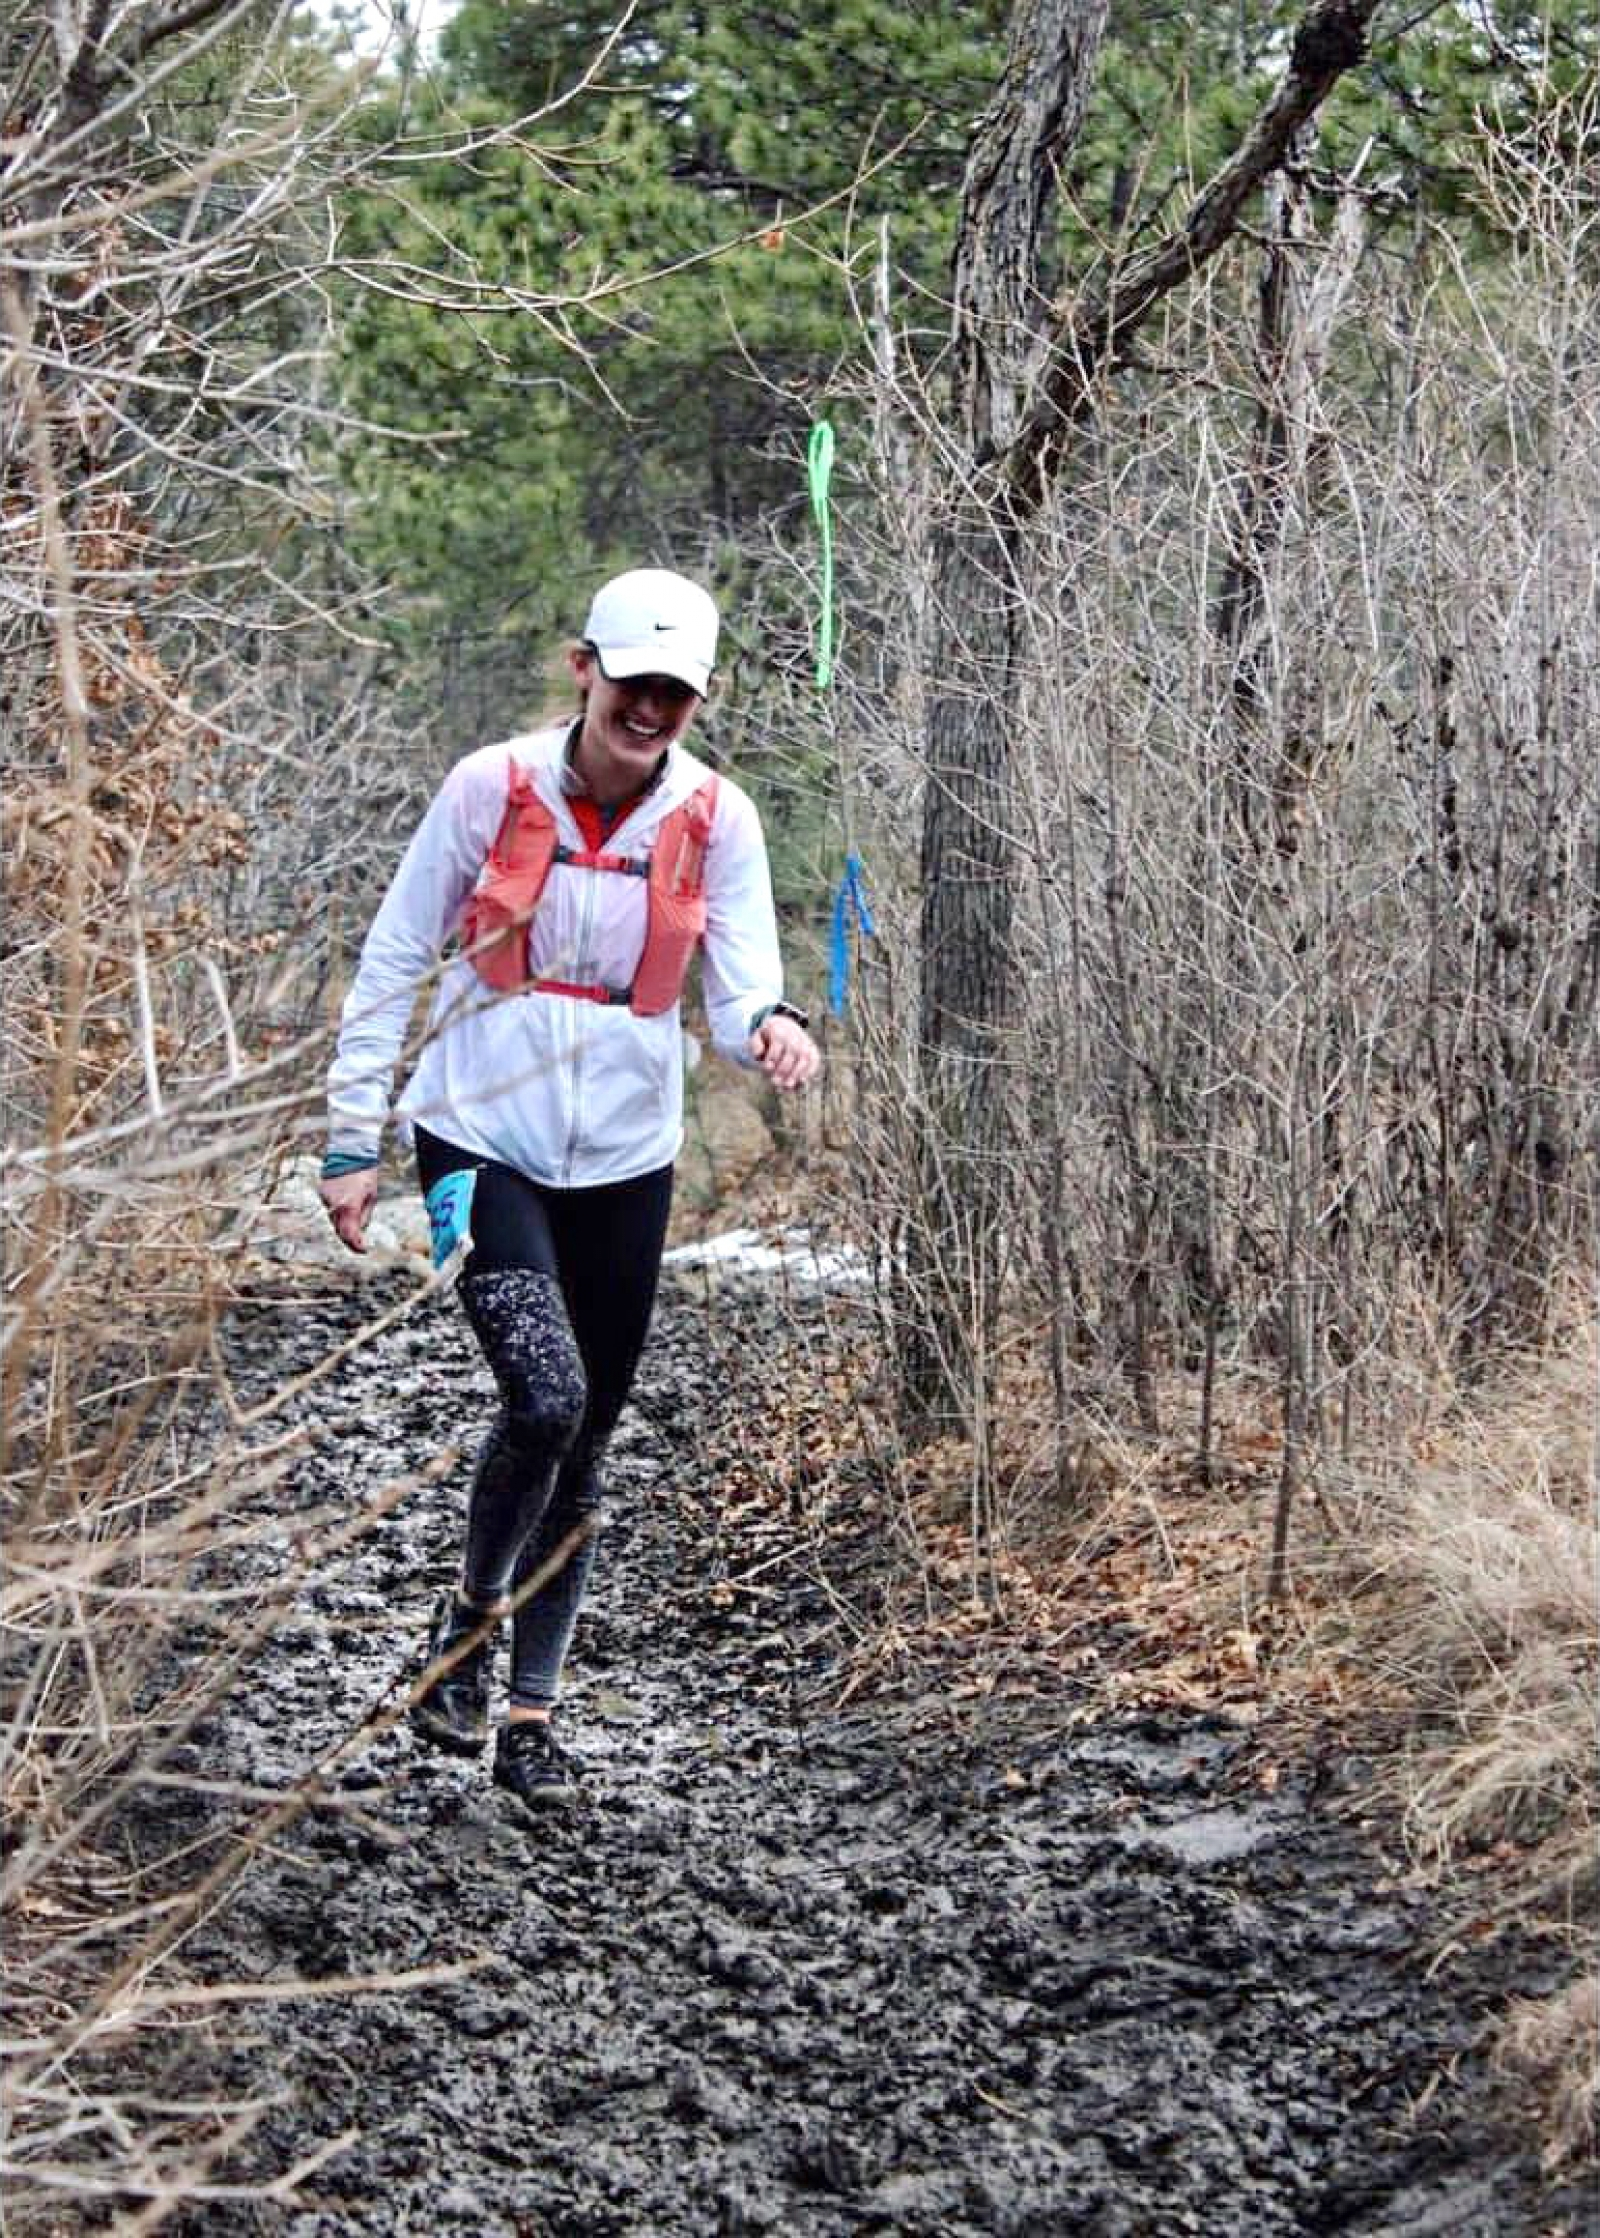 Anna Shadbolt completed her first Ultra Marathon last February.